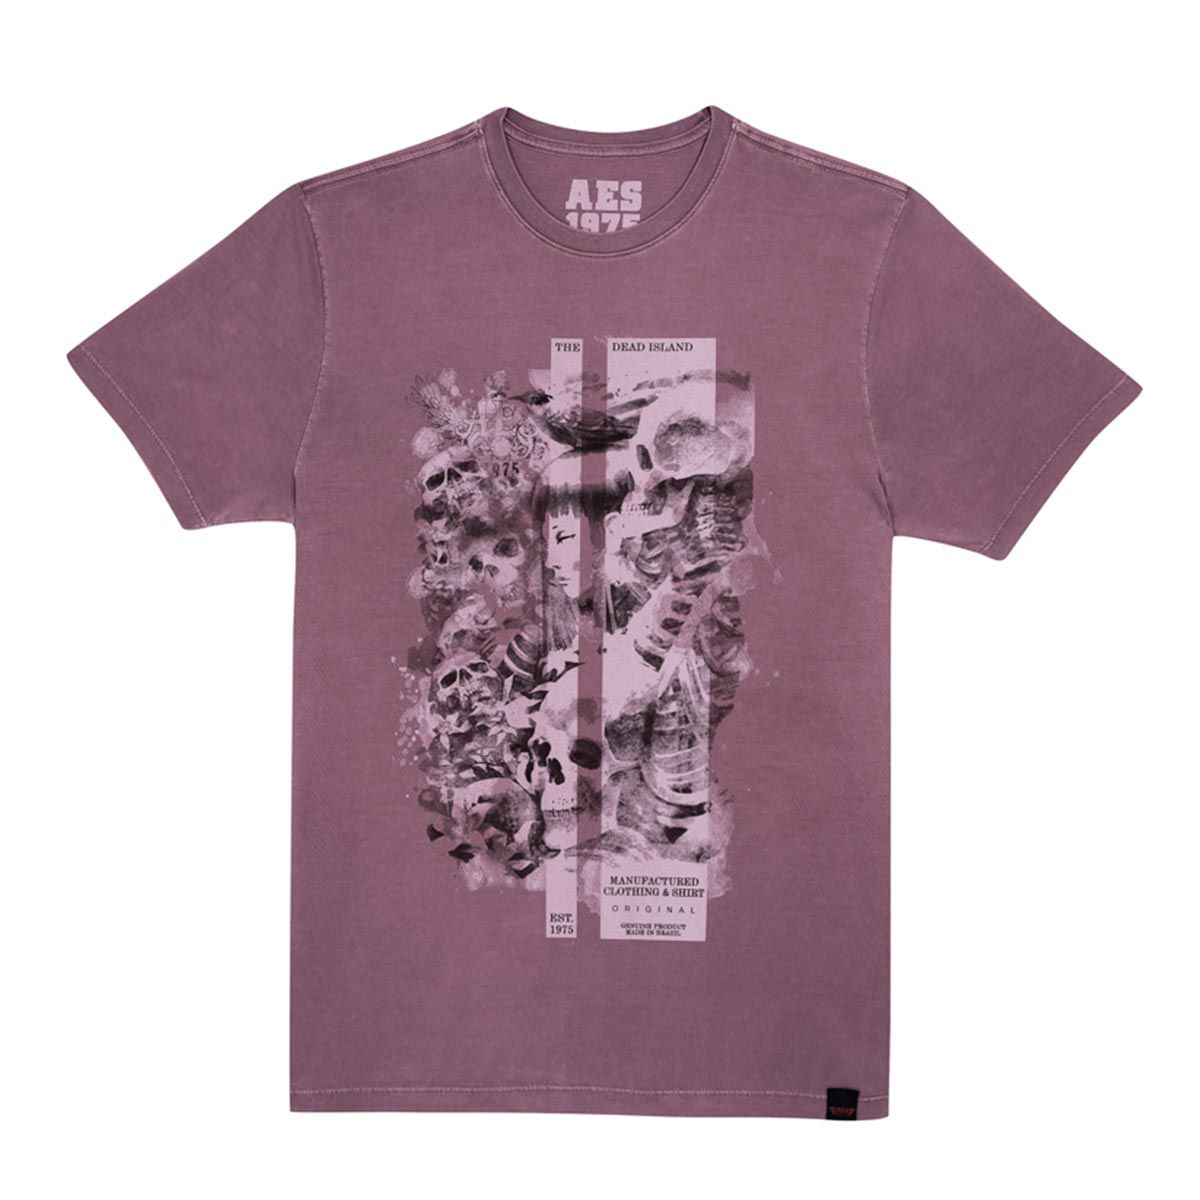 Camiseta AES 1975 The Island